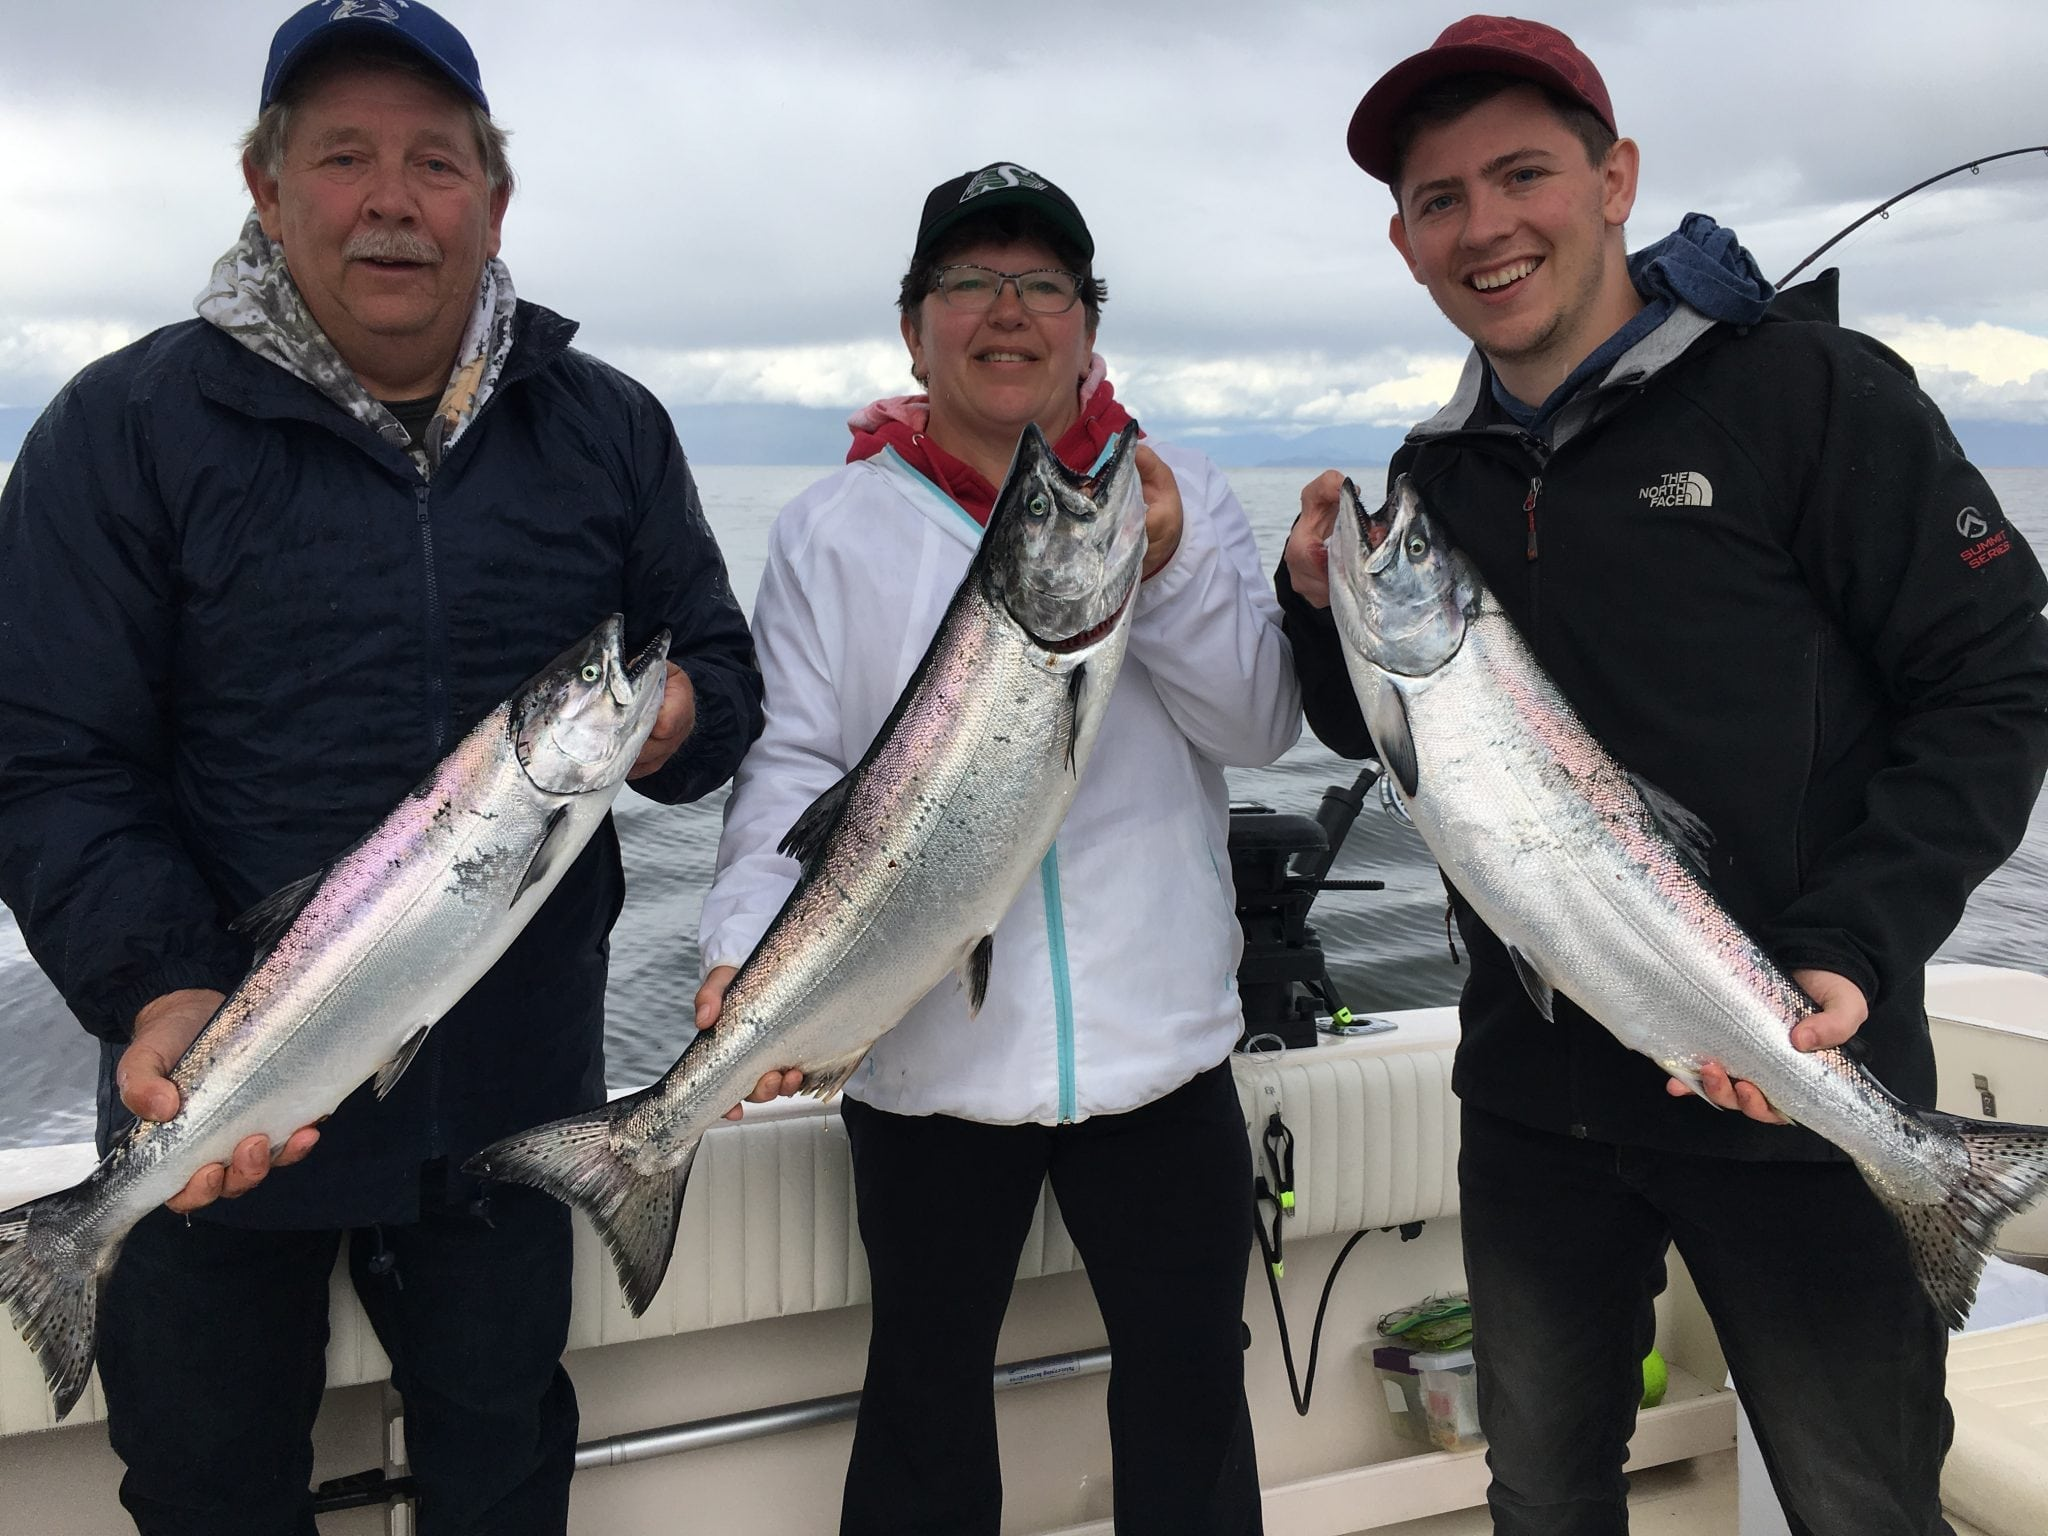 From Vancouver to Thrasher Rock, this is a successful family salmon fishing trip